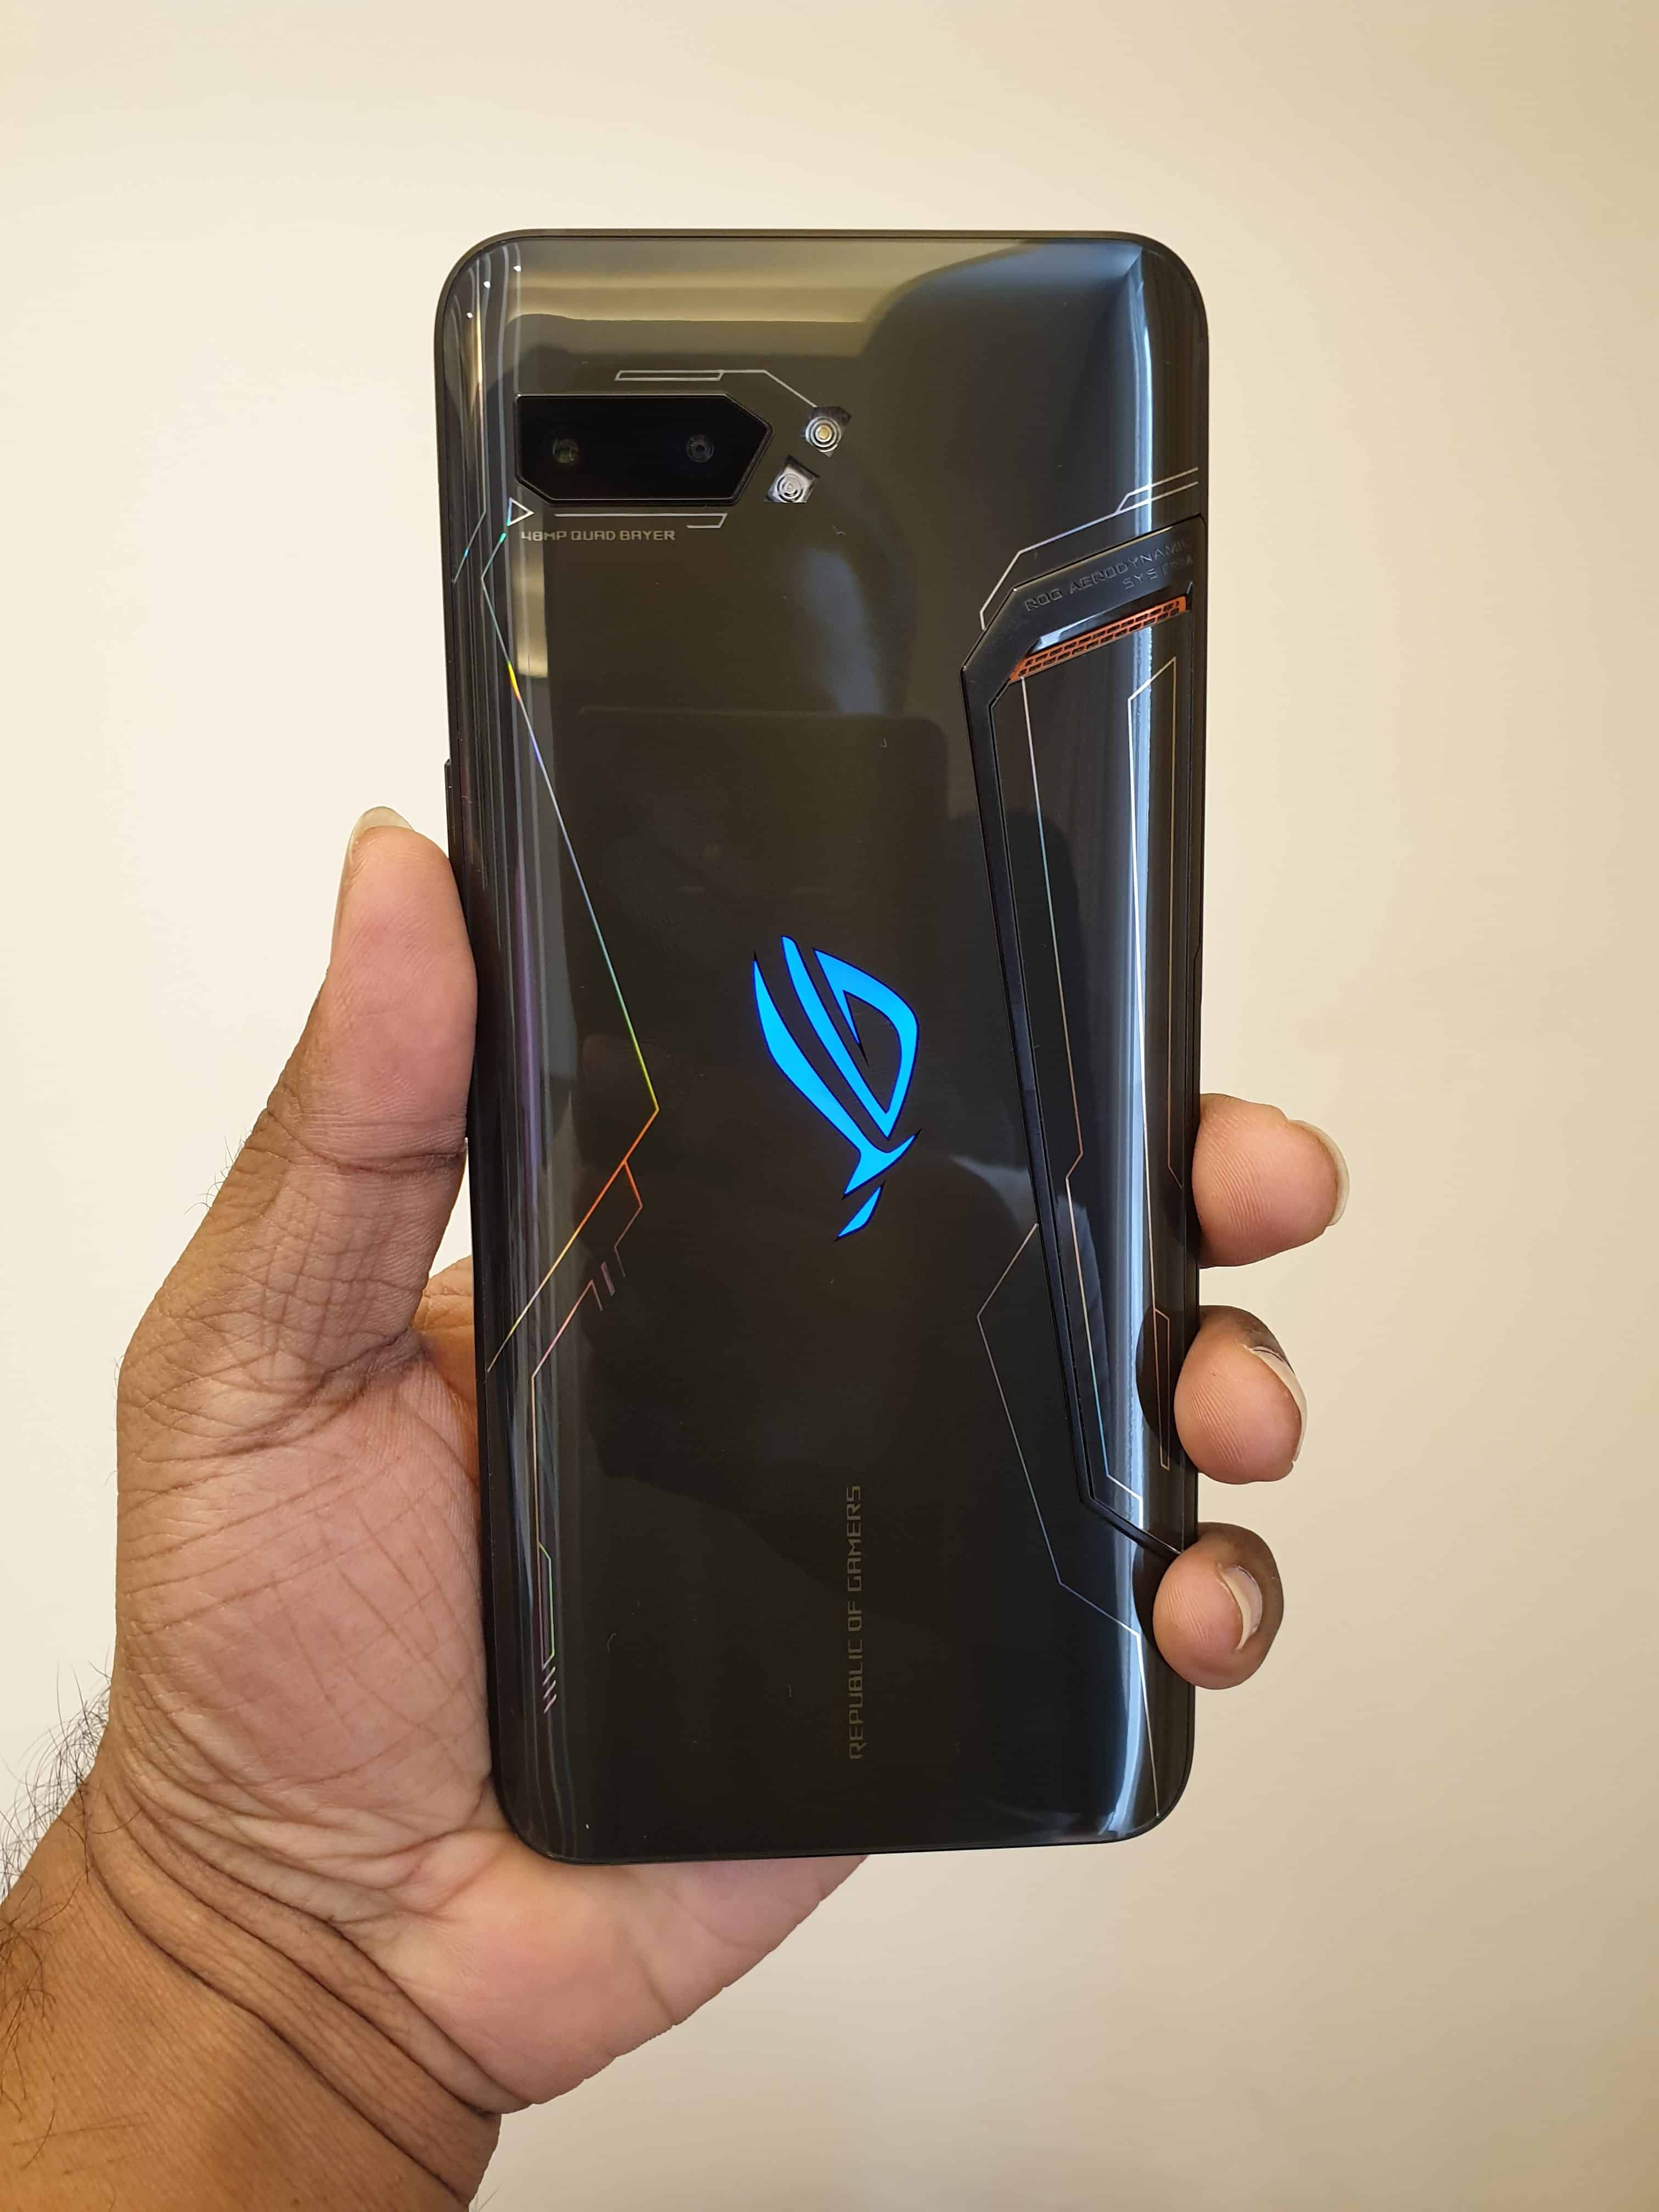 ROG Phone II Hands-on Review - My First Impressions On the Next-Gen Gaming Phone - 3